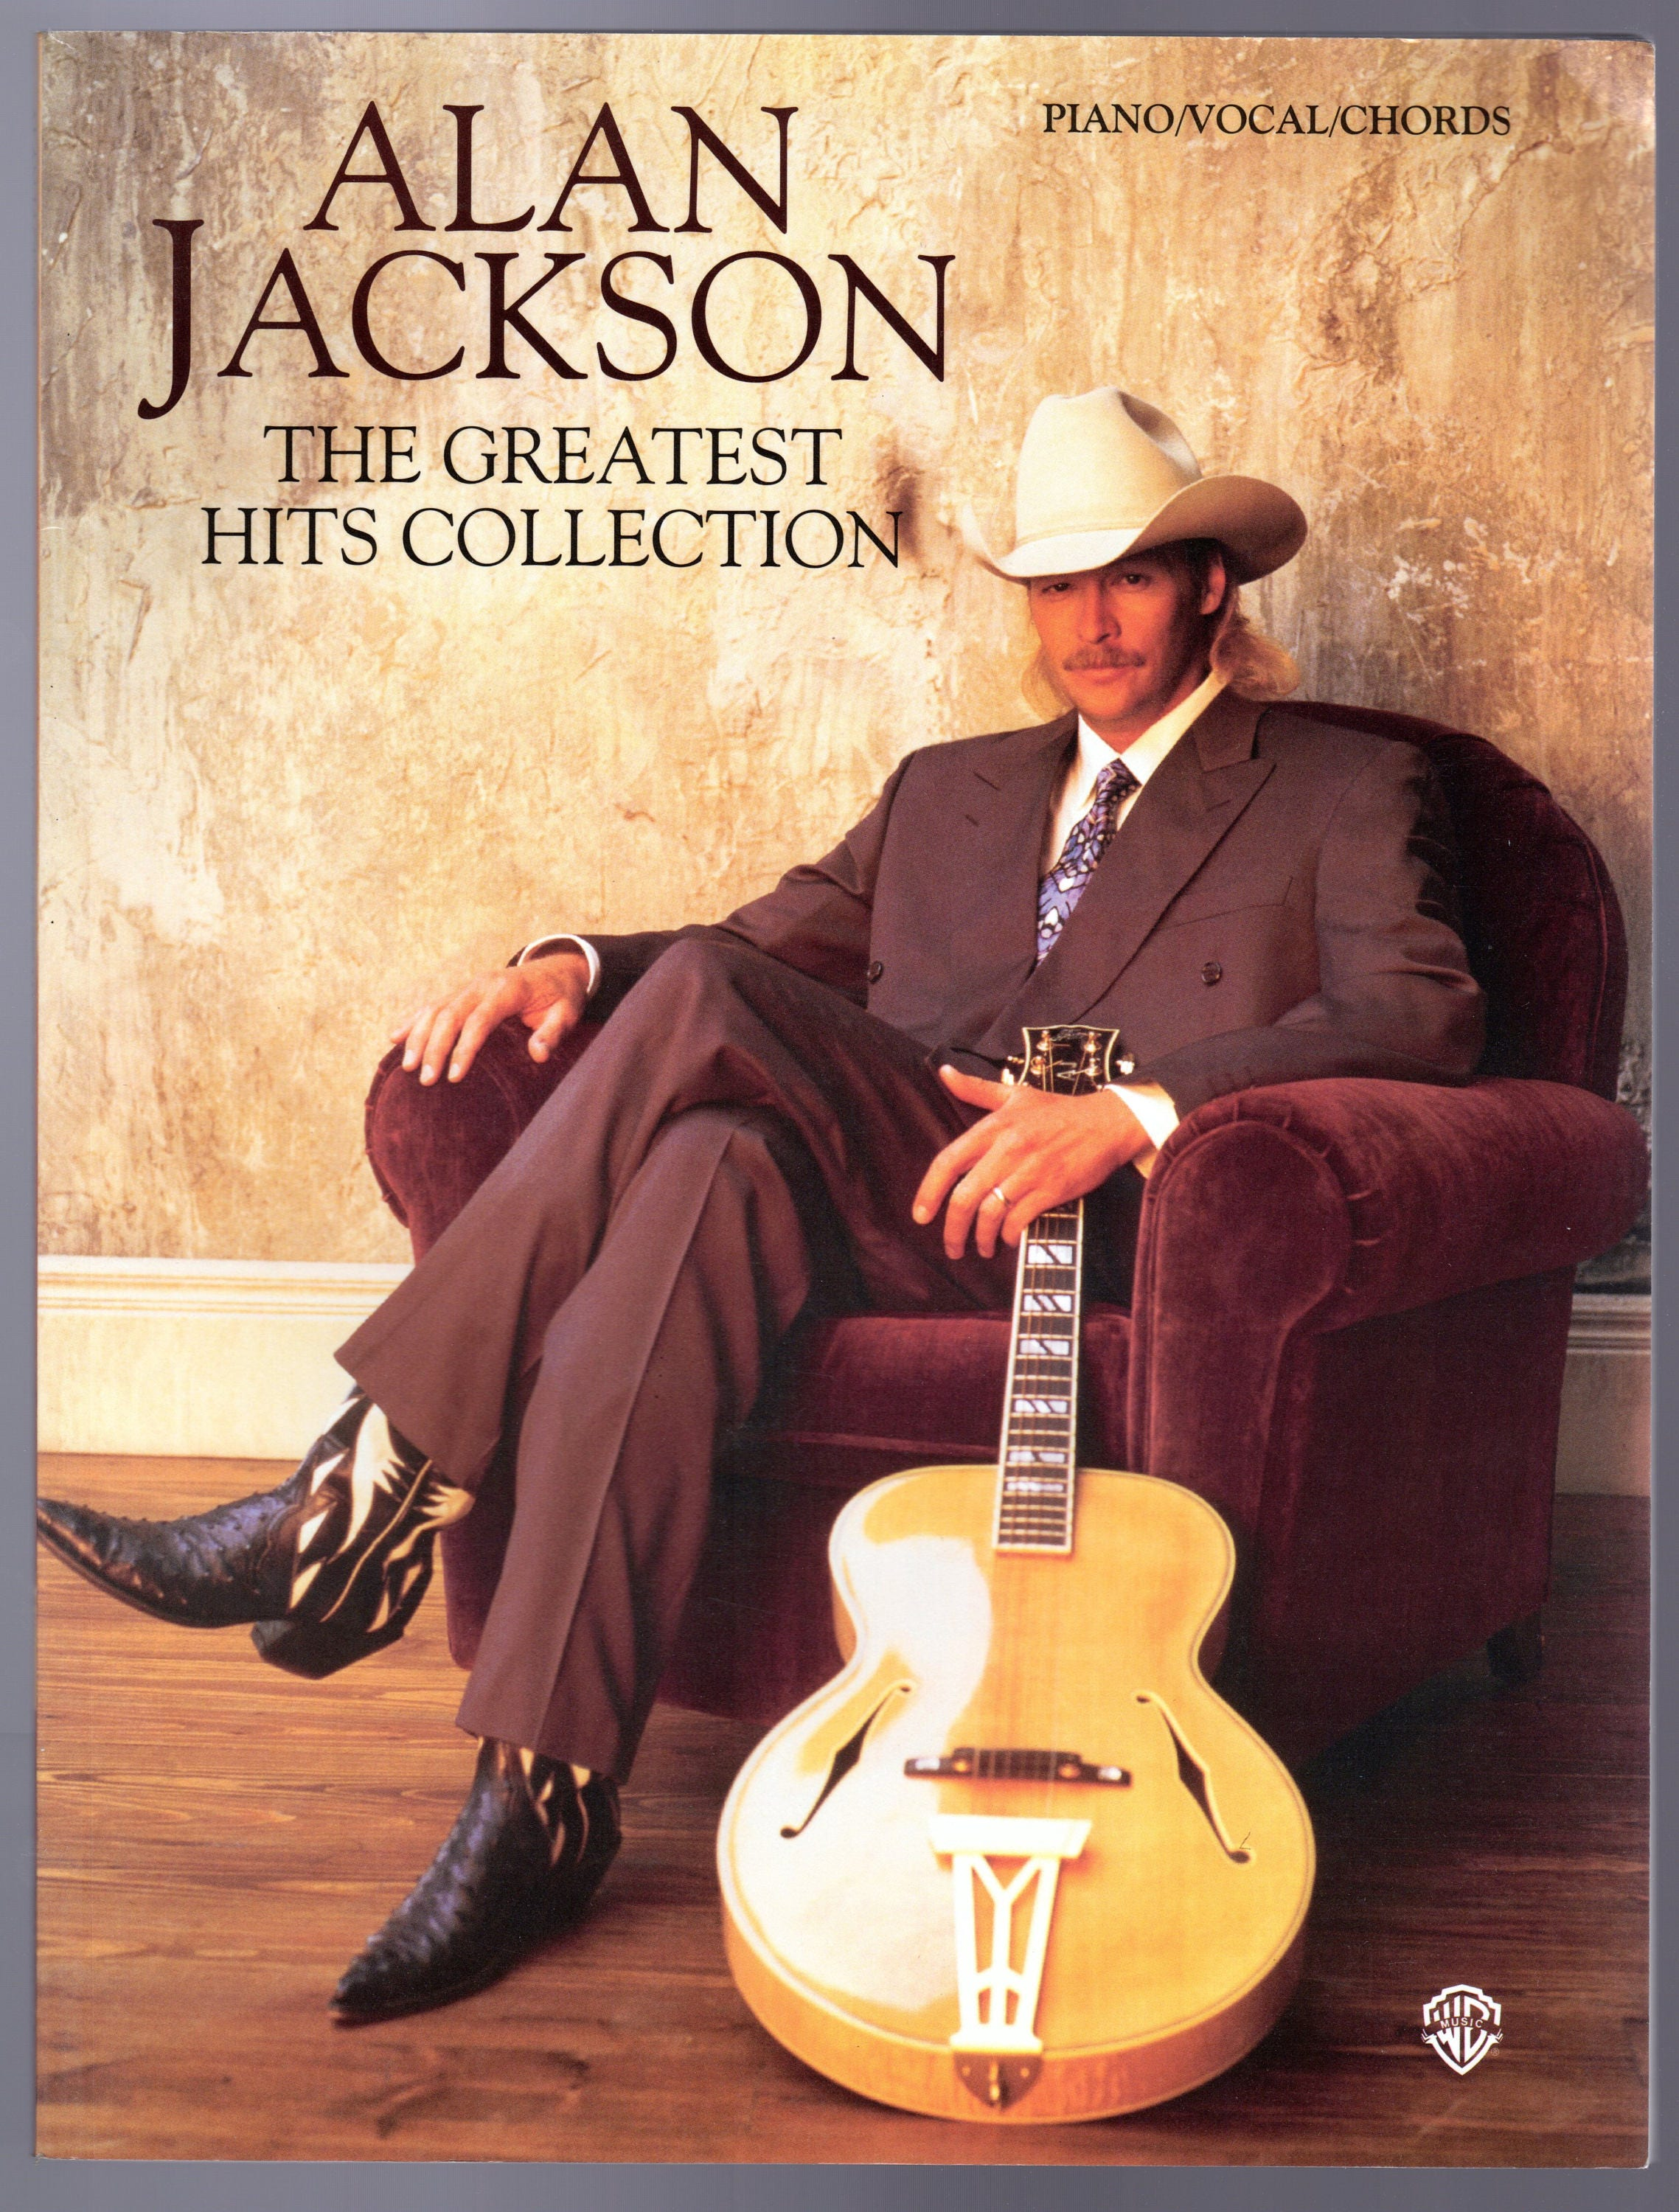 Alan Jackson The Greatest Hits Collection 1996 Near Mint Etsy